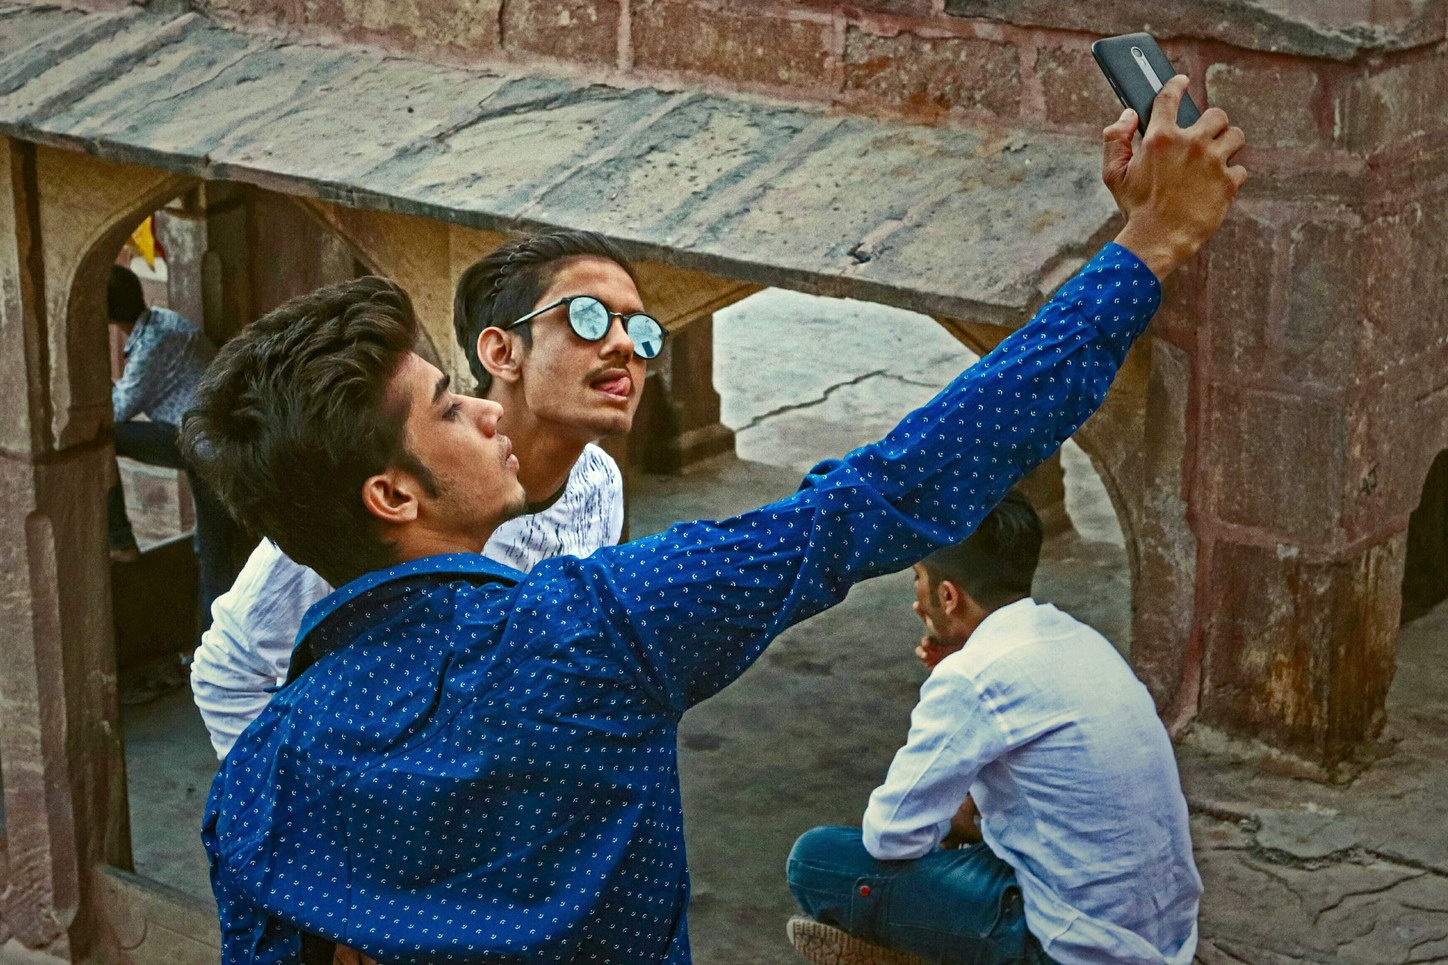 The nawabs of narcissus / The sultans of selfie